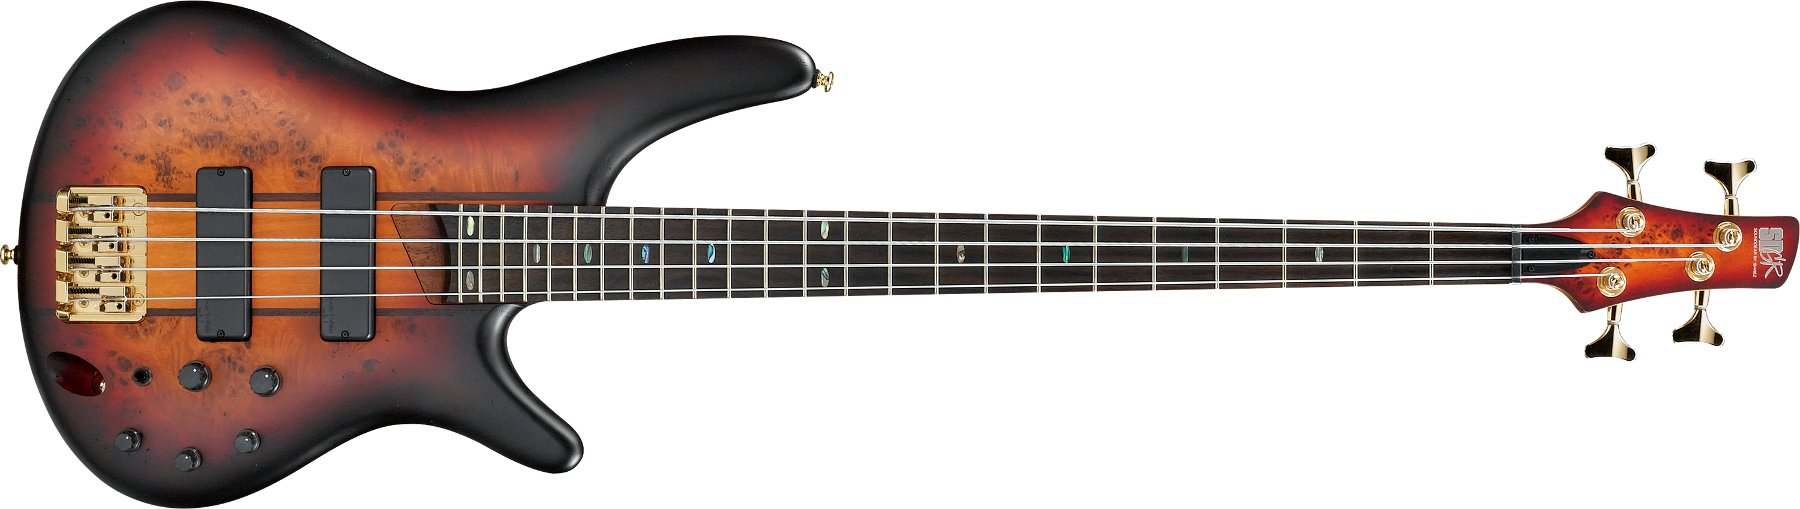 Ibanez SR800 4-String Bass Guitar, 24-Fret, Rosewood Fretboard with Abalone Oval Inlay SR800